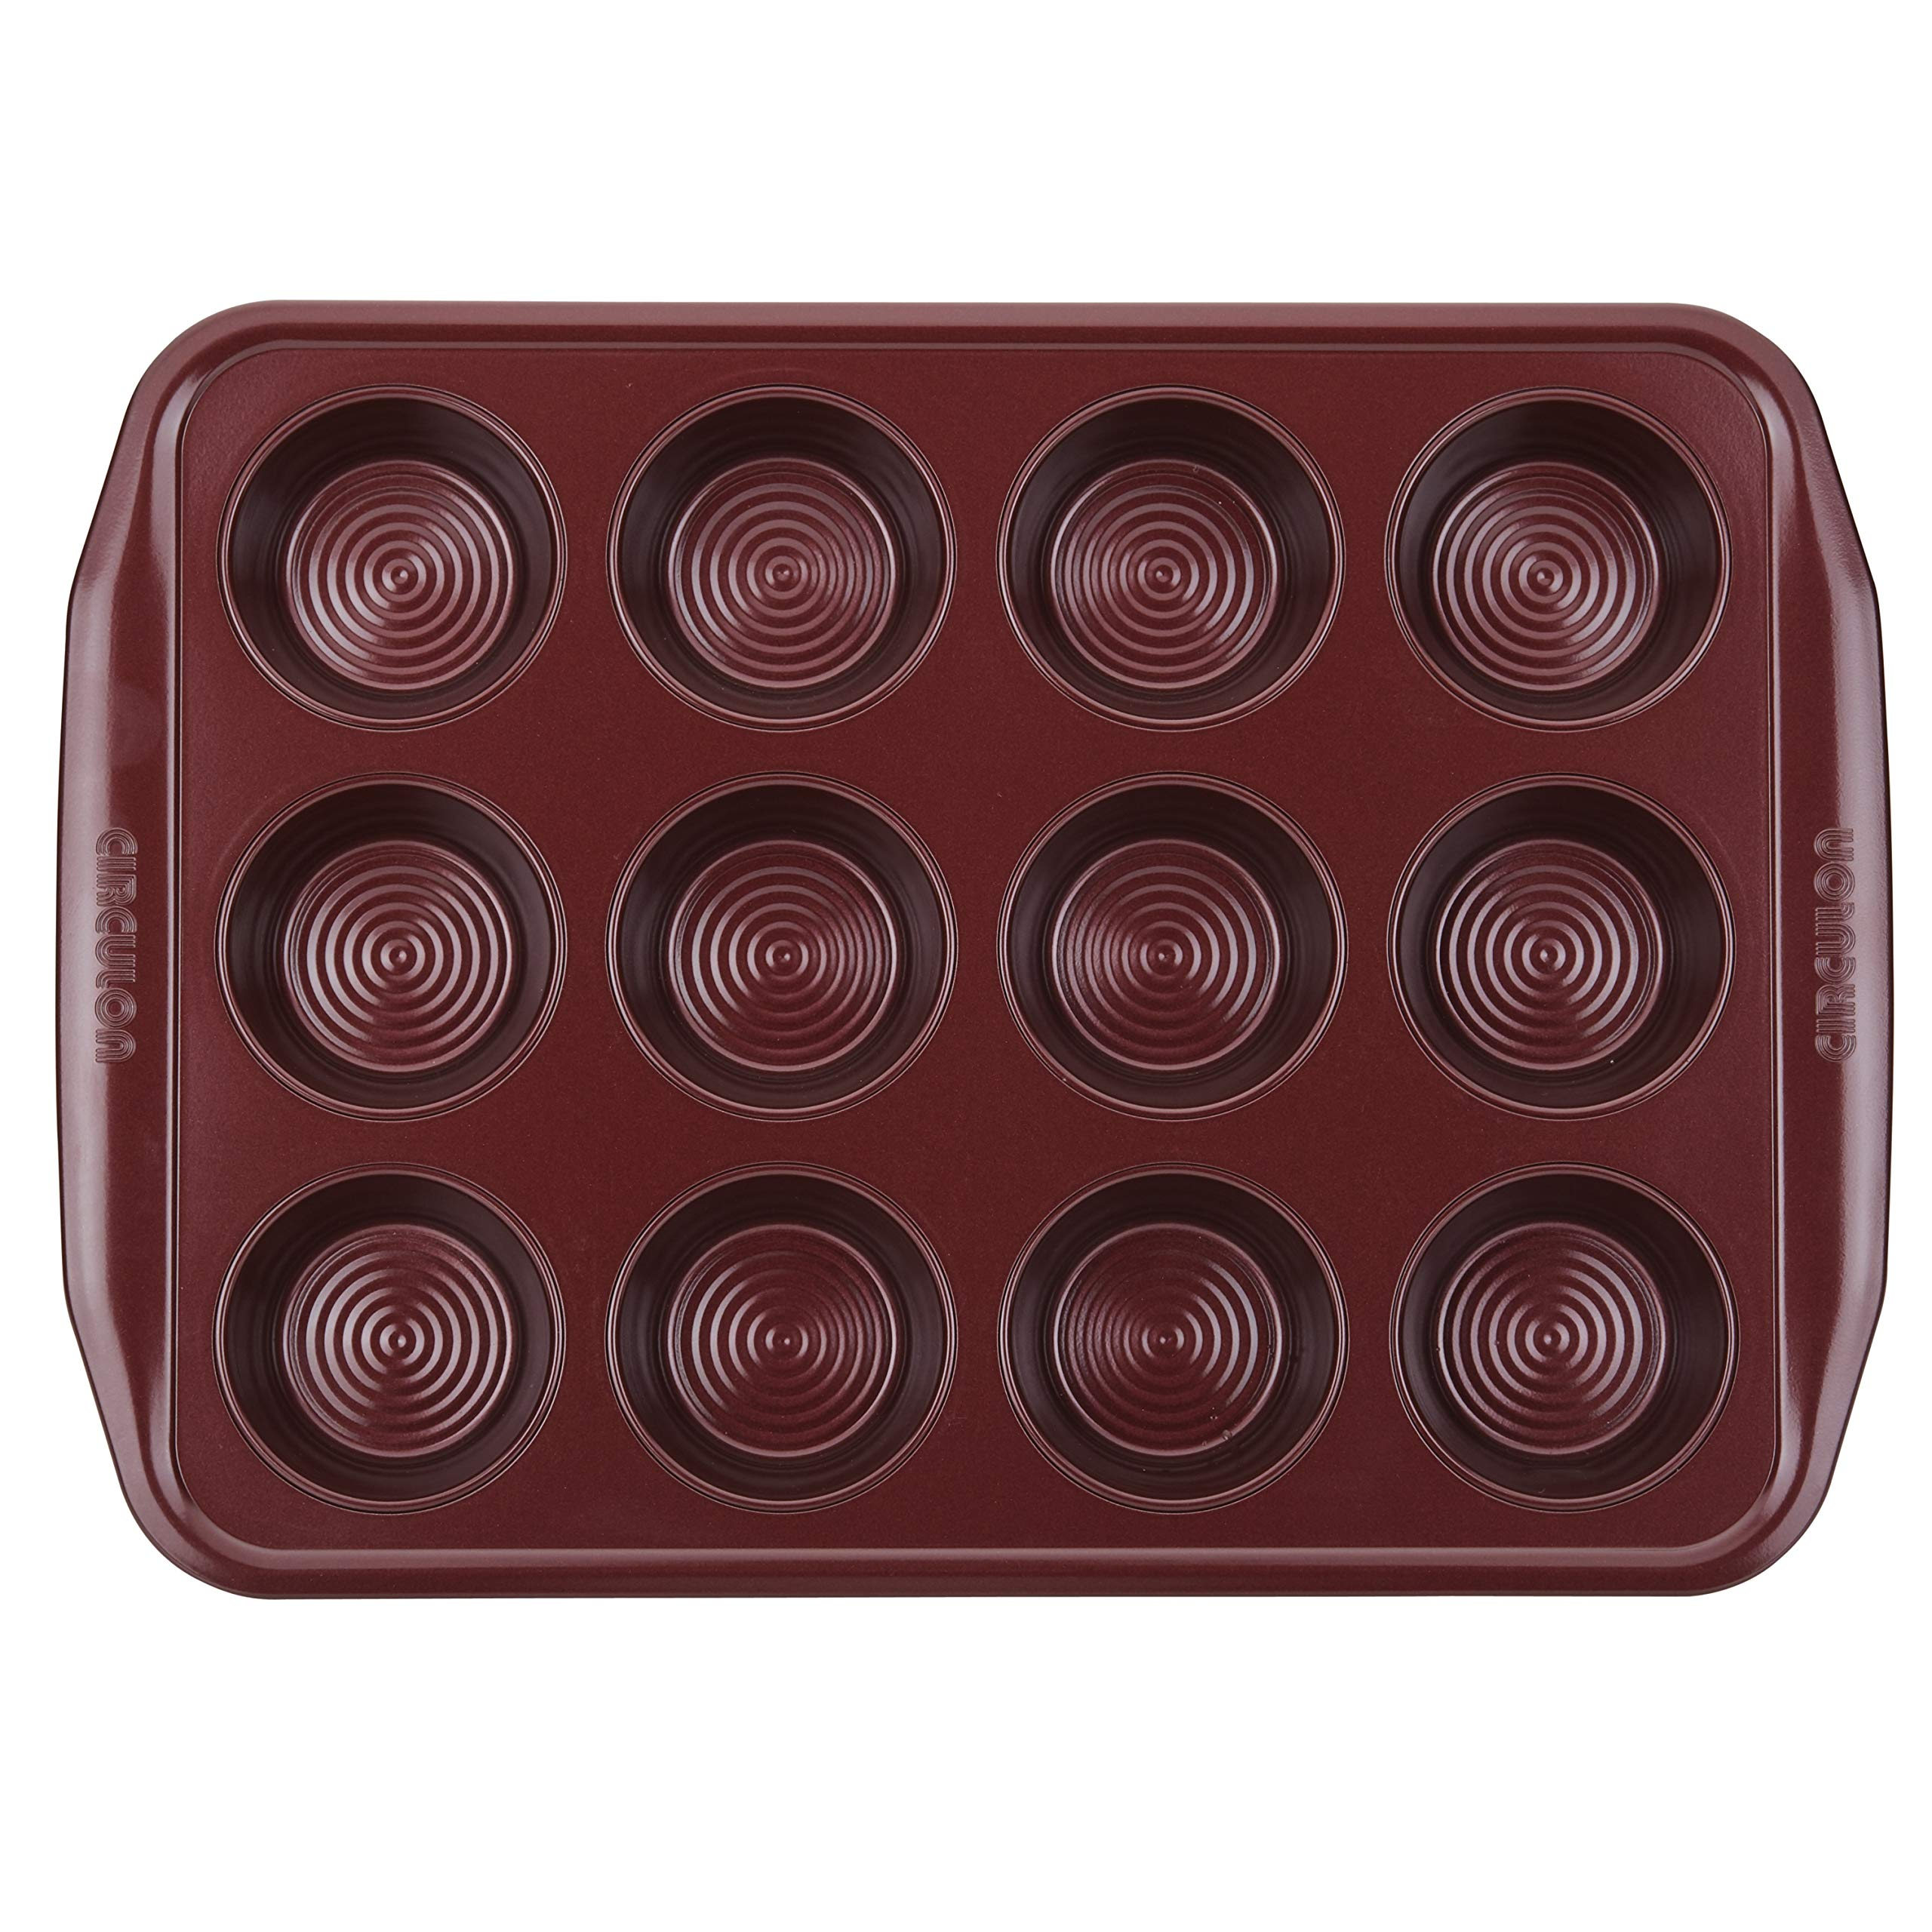 Circulon 47882 12-Cup Steel Muffin Pan, Merlot by Circulon (Image #2)